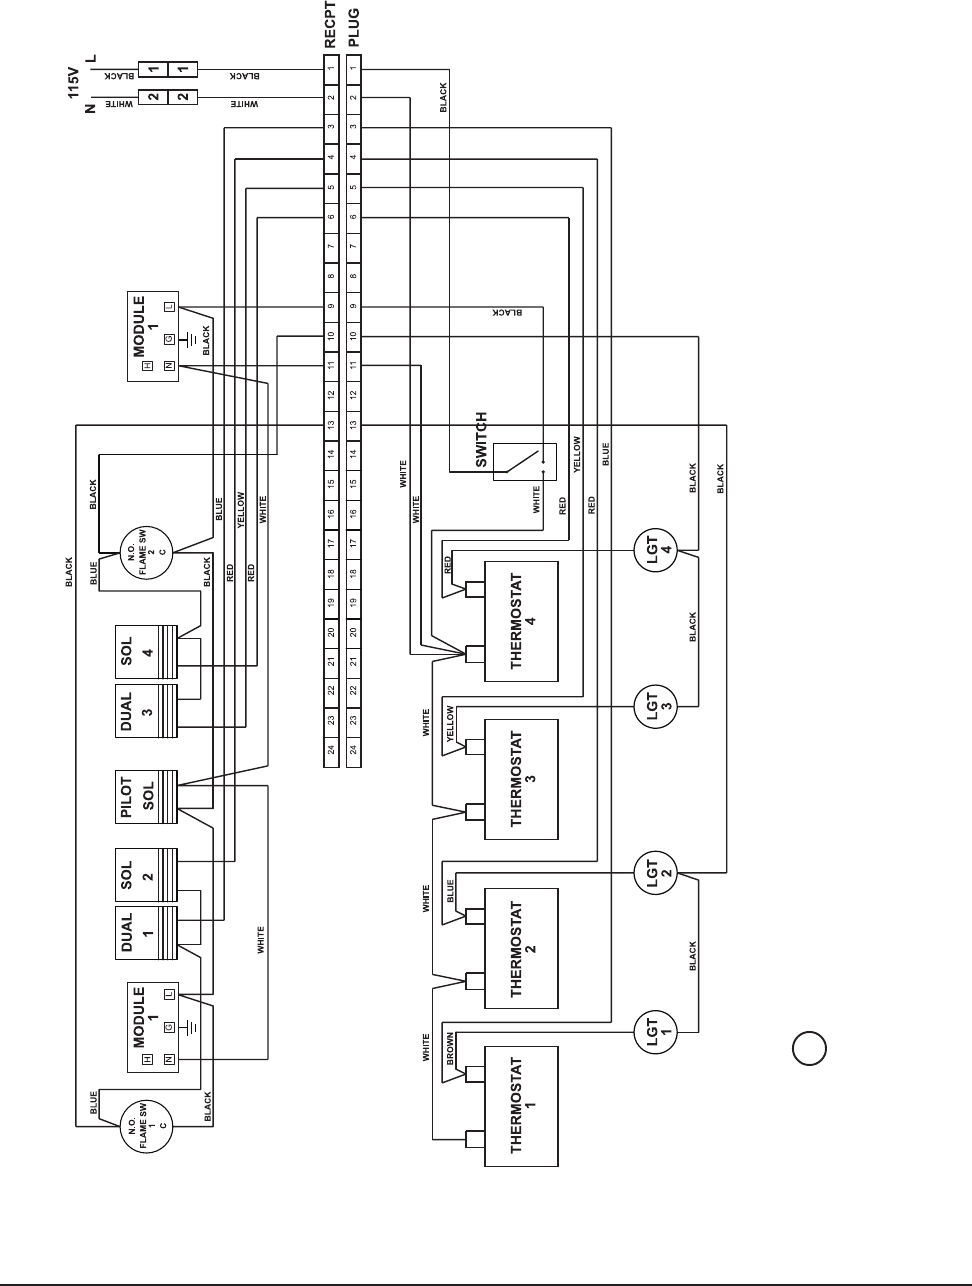 delfield wiring diagrams delfield get free image about wiring diagram